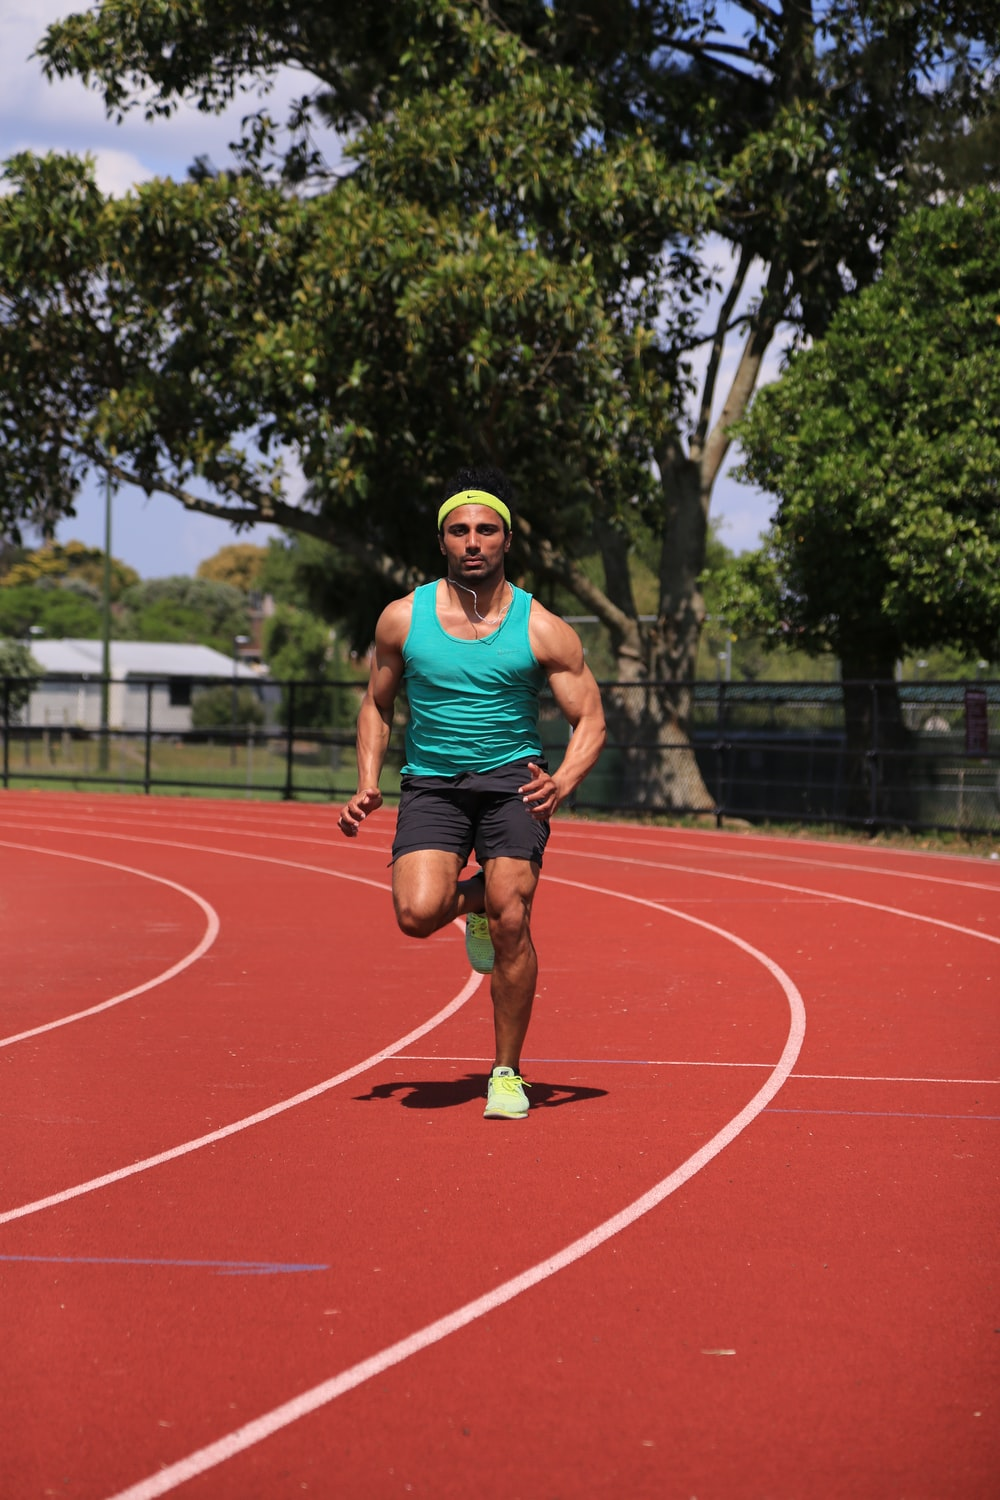 man in green tank top running on track field during daytime